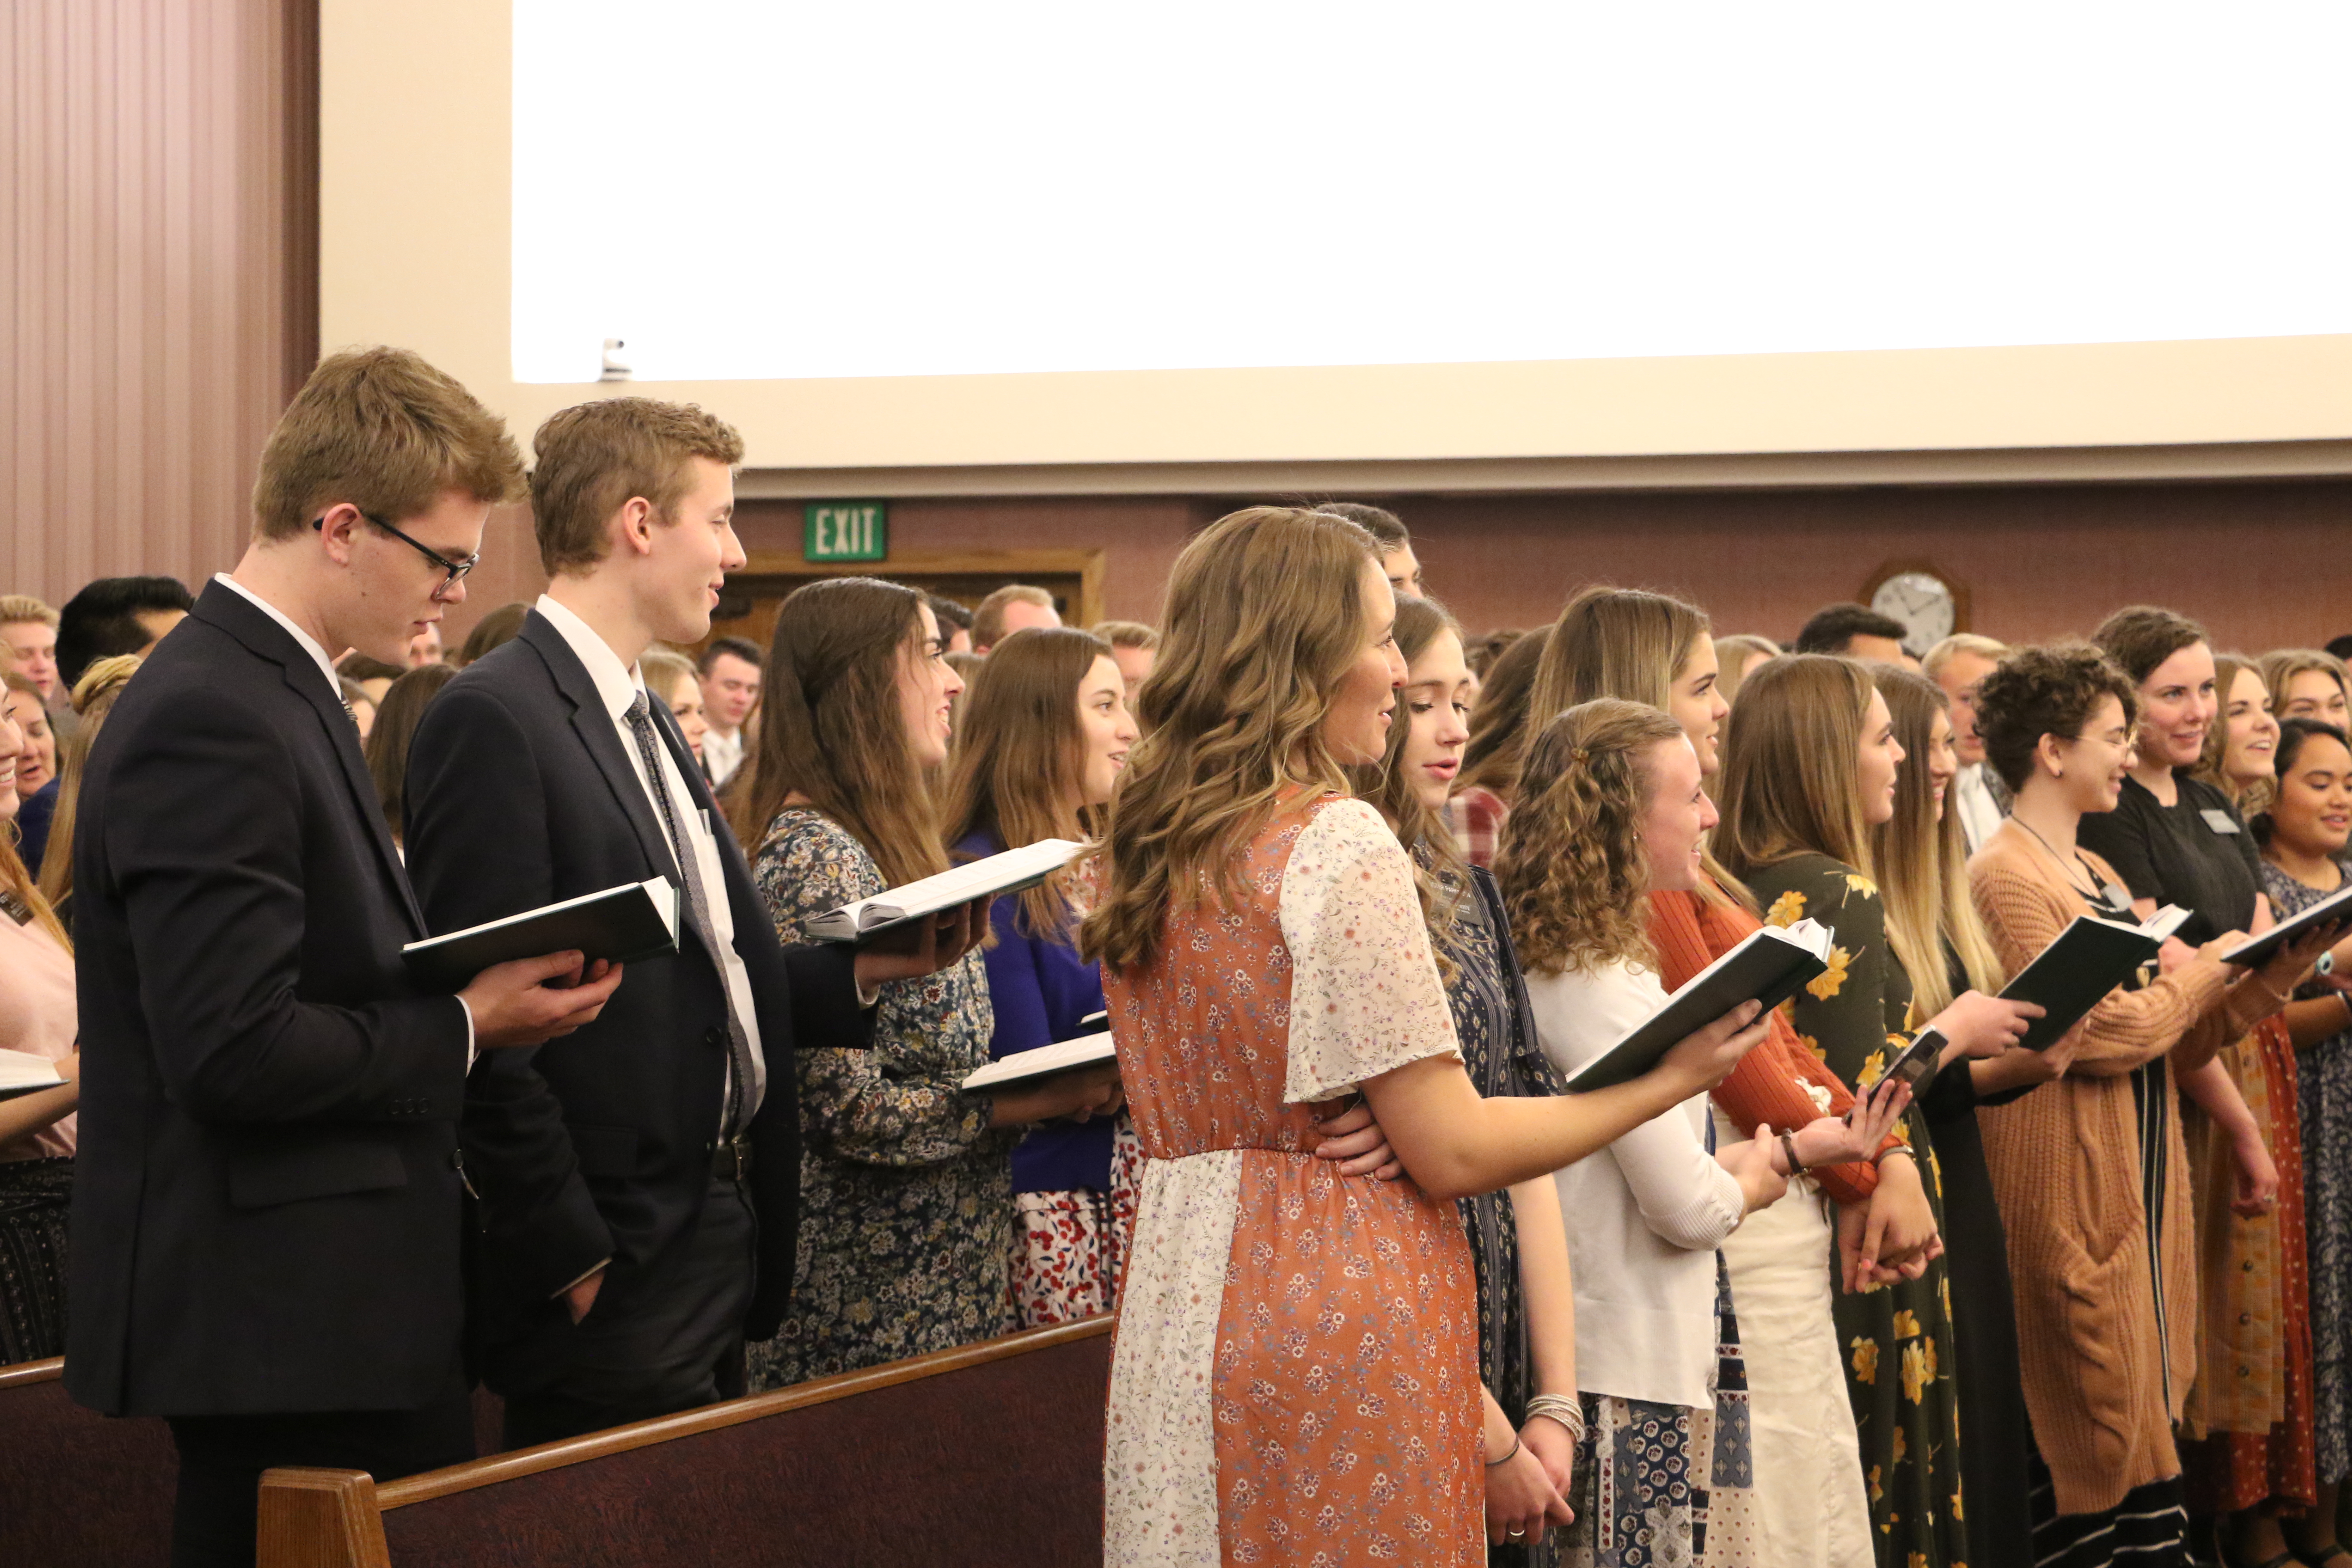 Missionaries in the Louisiana Baton Rouge Mission stand and sing under the direction of Sister Mary Cook during a devotional with Elder Quentin L. Cook of the Quorum of the Twelve Apostles on Saturday, Nov. 16, 2019, in Baton Rouge, Louisiana.